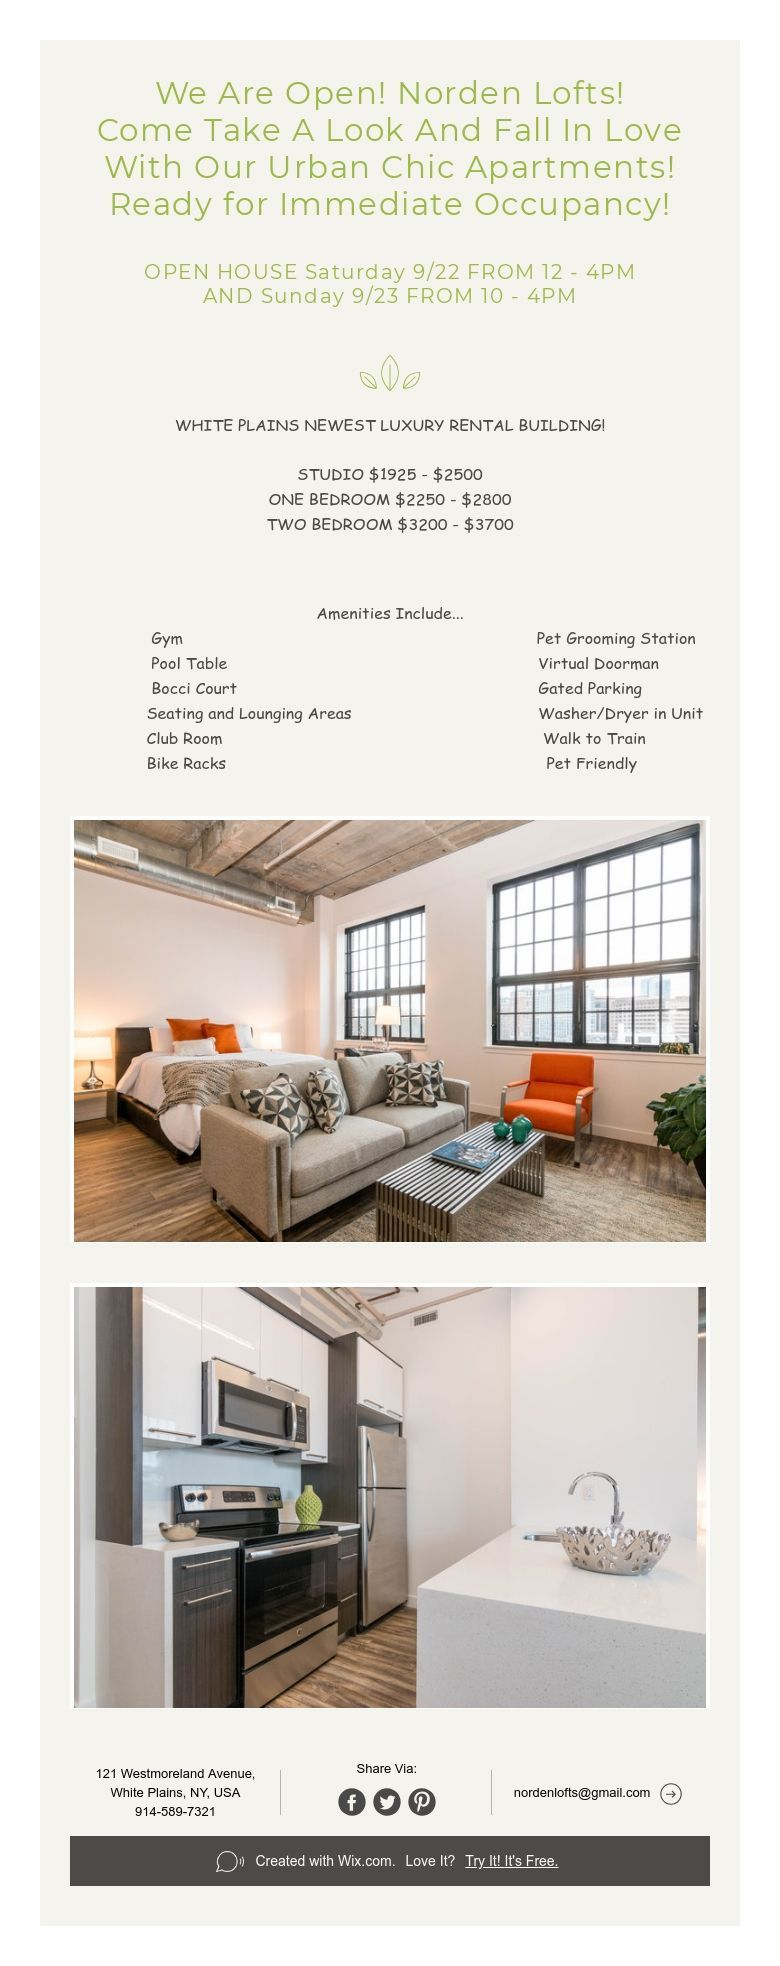 We Are Open Norden Lofts Come Take A Look And Fall In Love With Our Urban